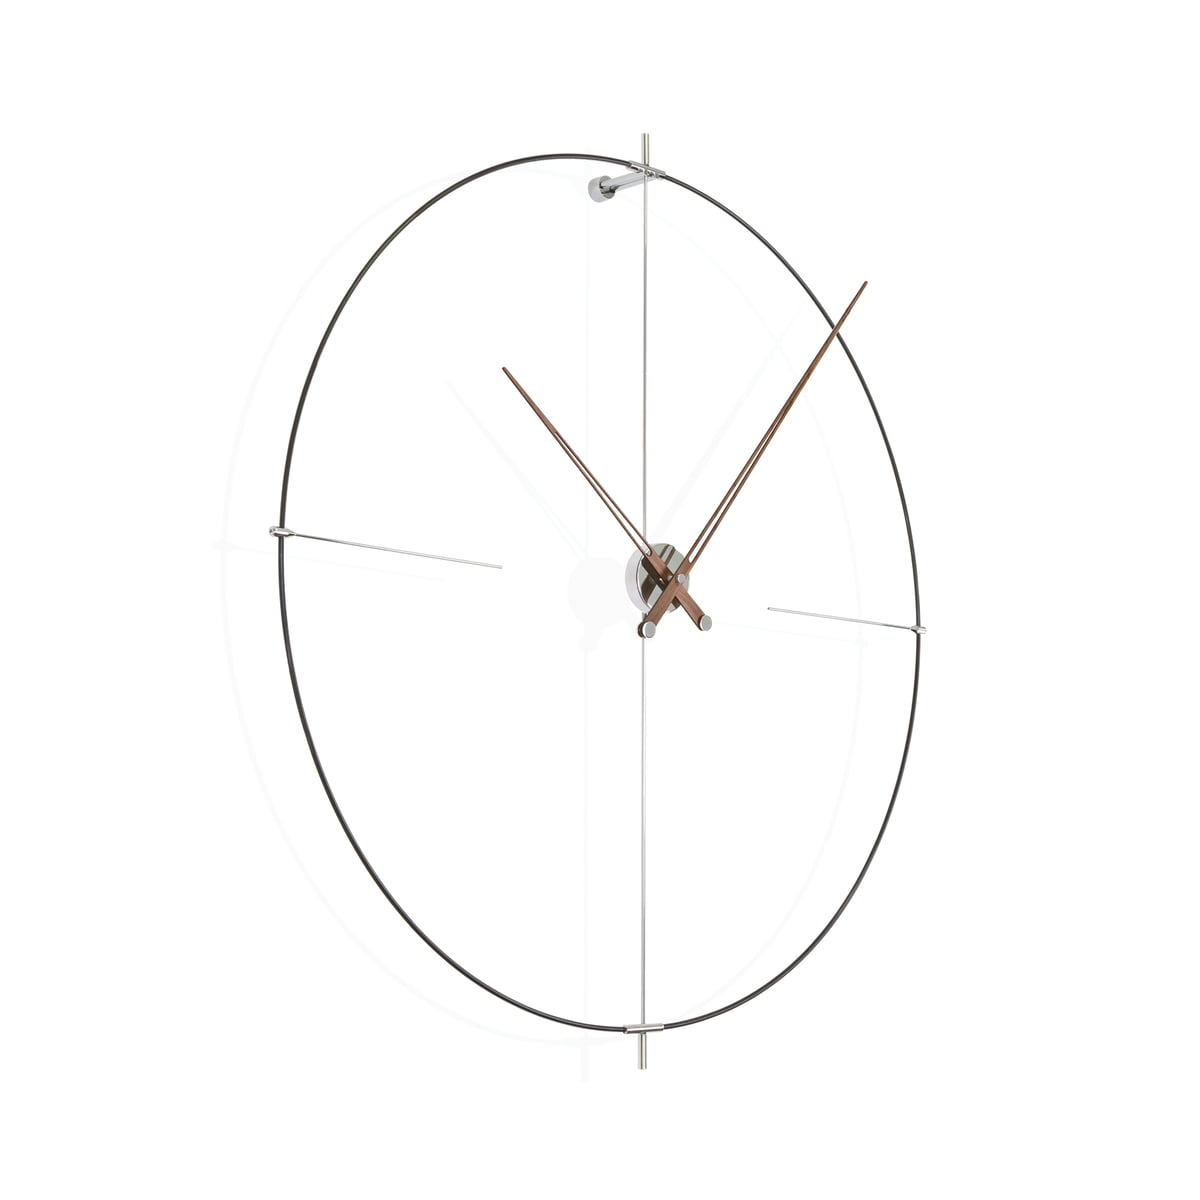 Bilbao wall clock by nomon in the shop bilbao wall clock by nomon in black made of walnut wood ccuart Image collections